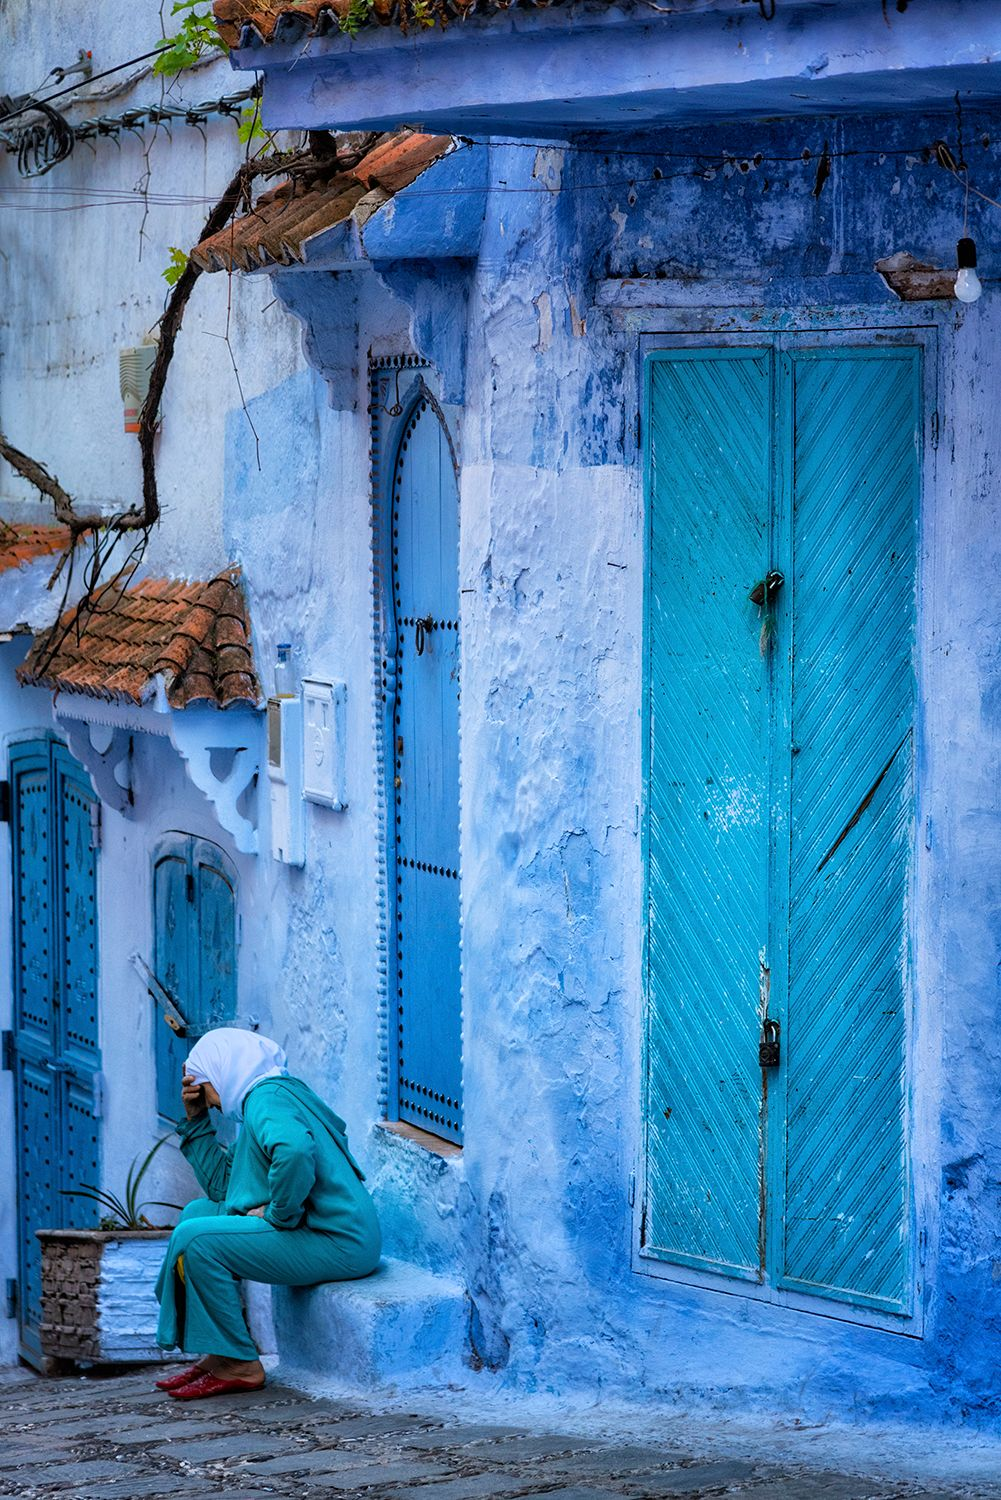 Street Life in the blue city